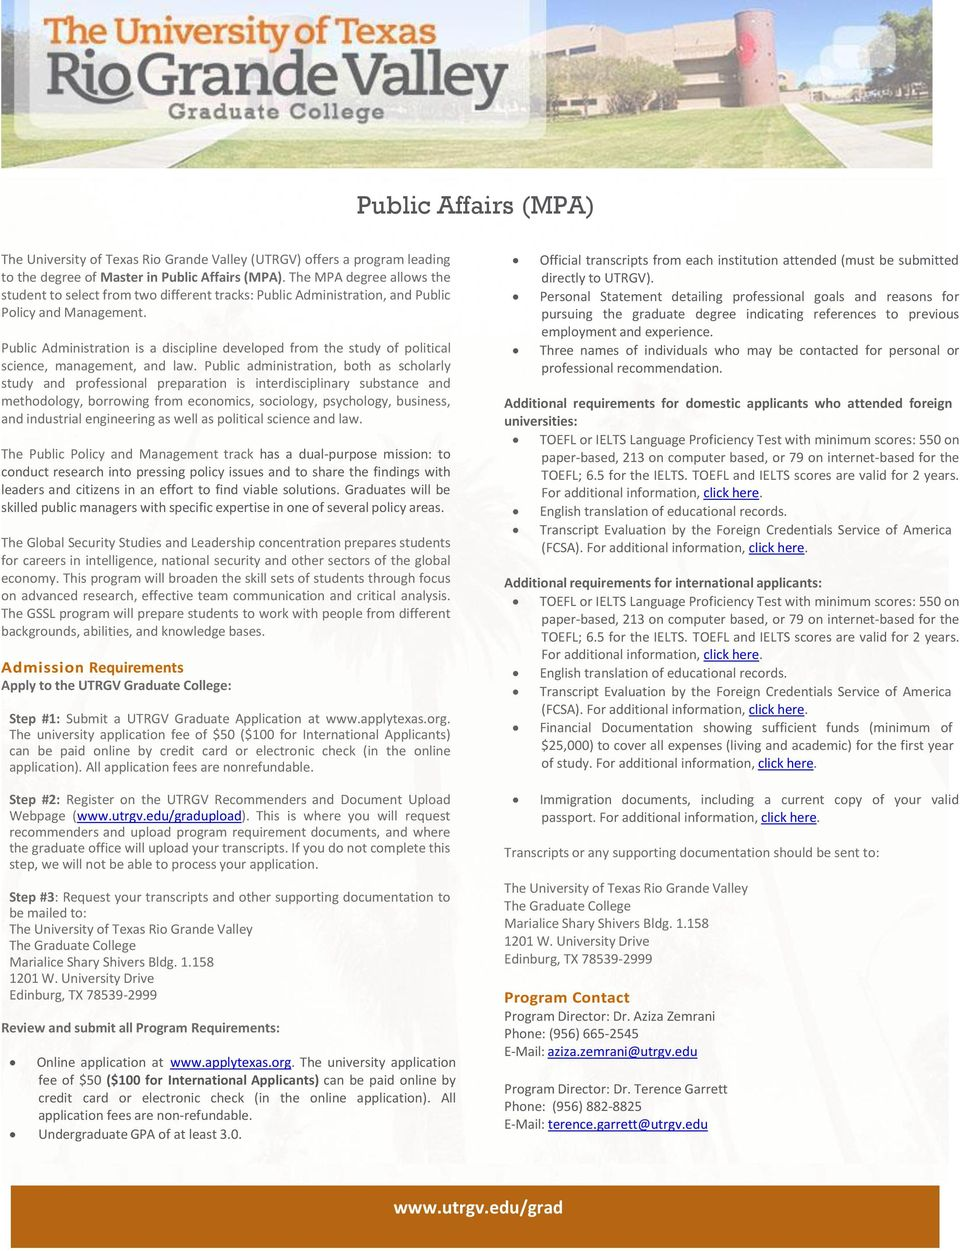 Public Administration is a discipline developed from the study of political science, management, and law.